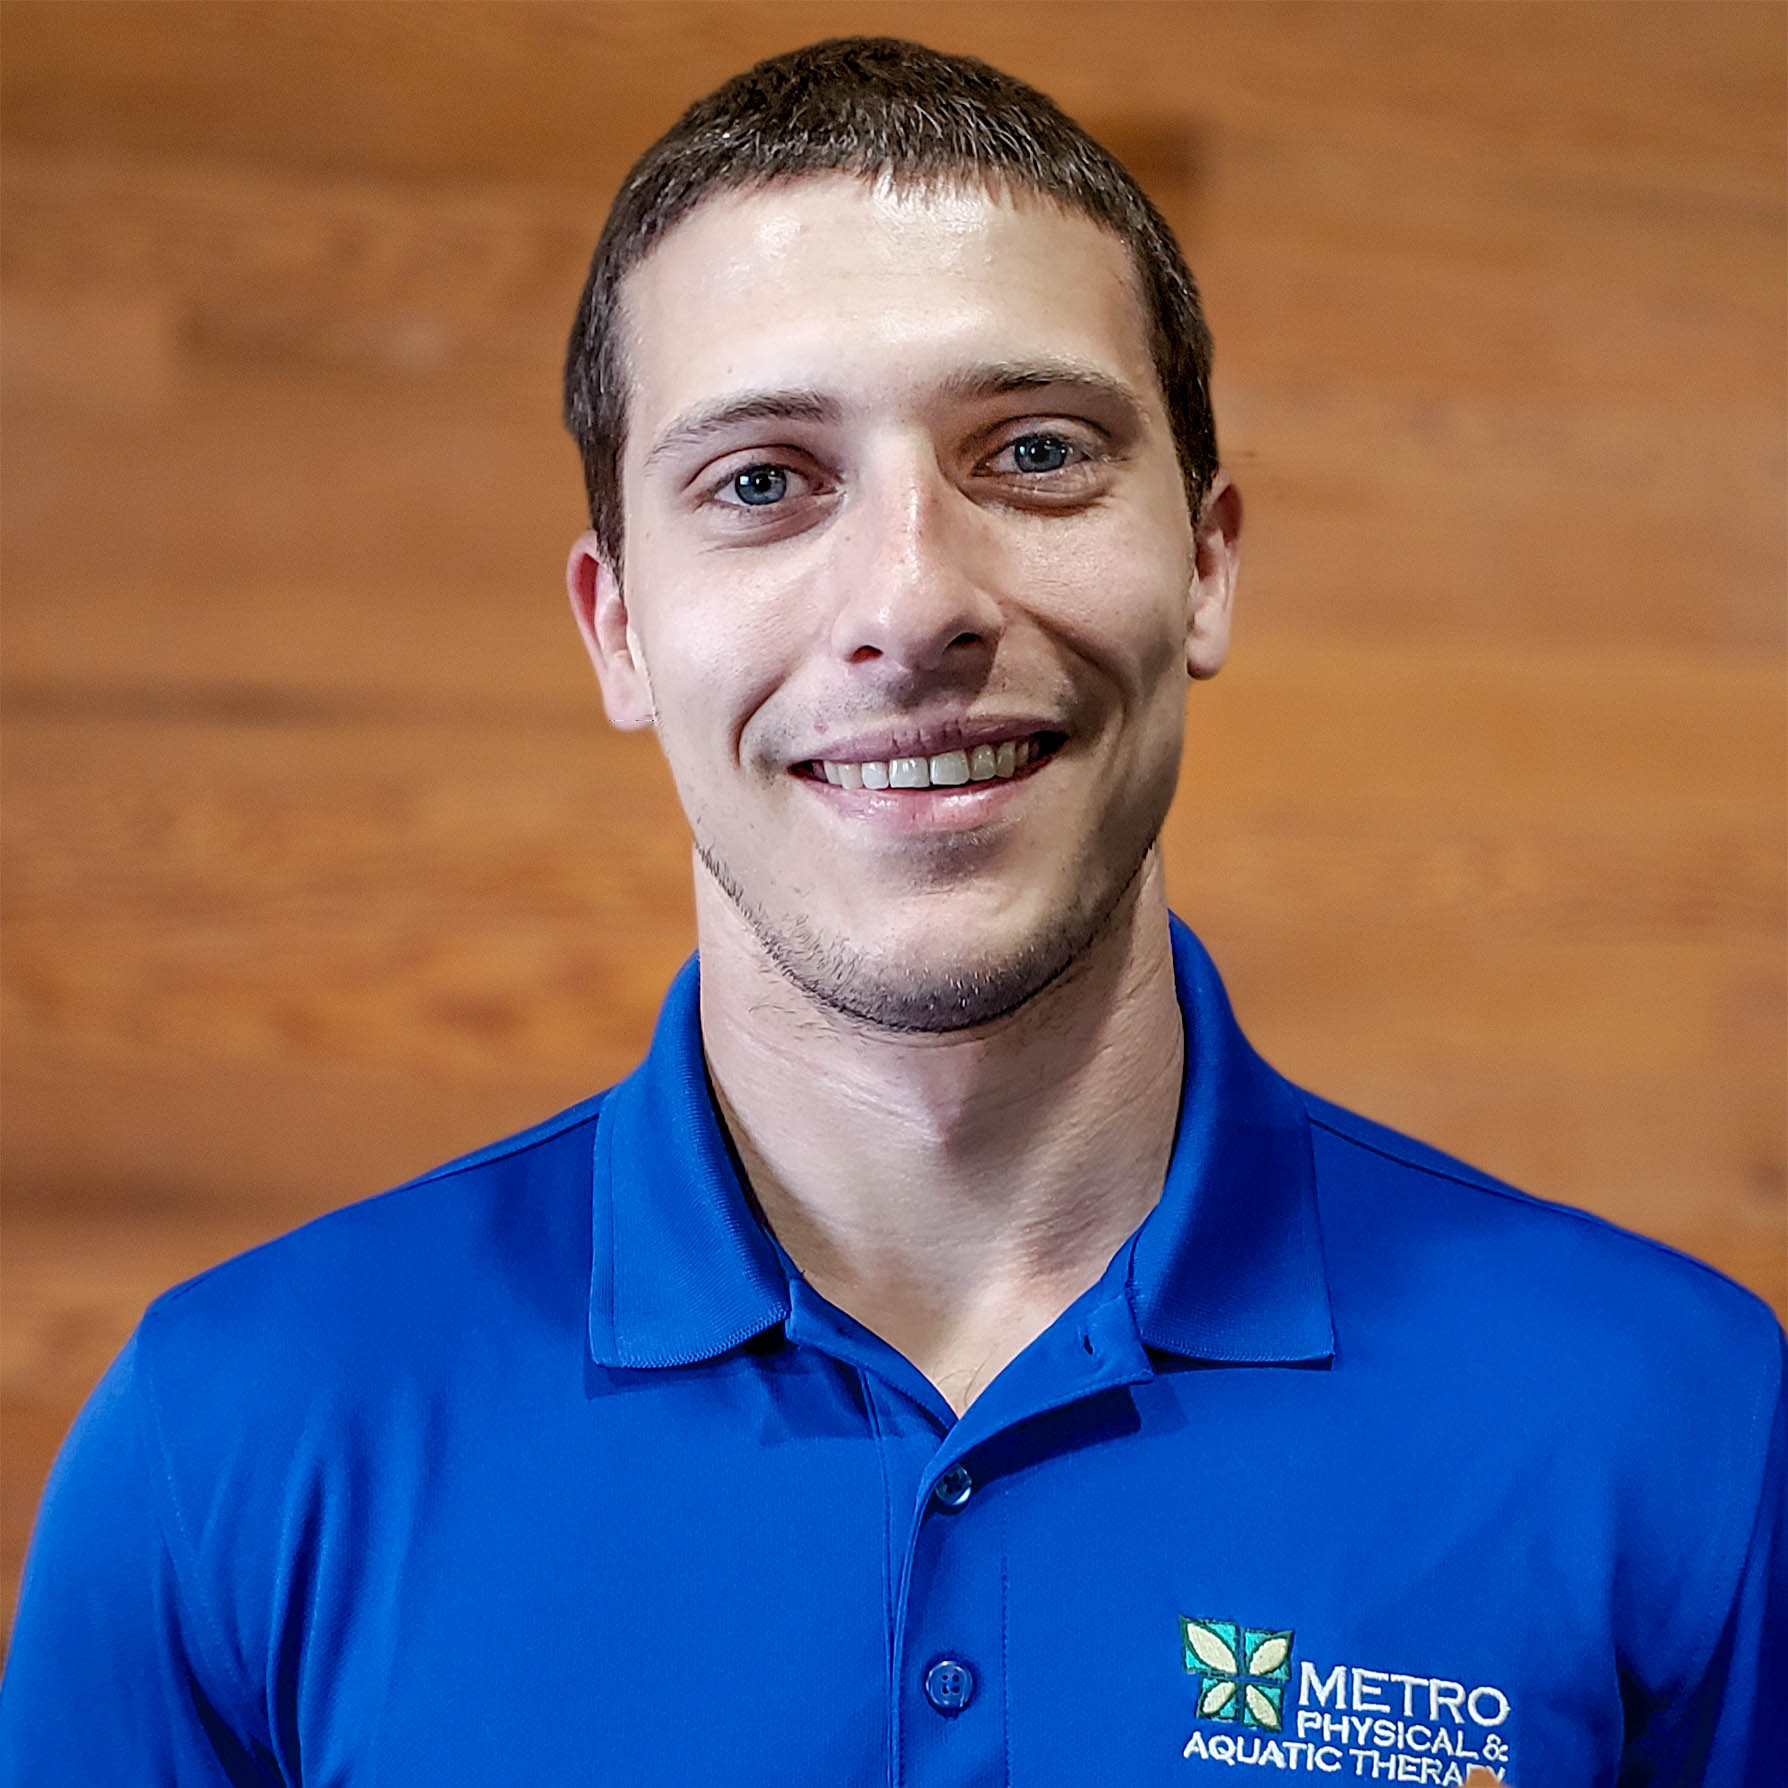 Richard Pisacone is a Physical Therapist at Metro Physical Therapy Rocky Point